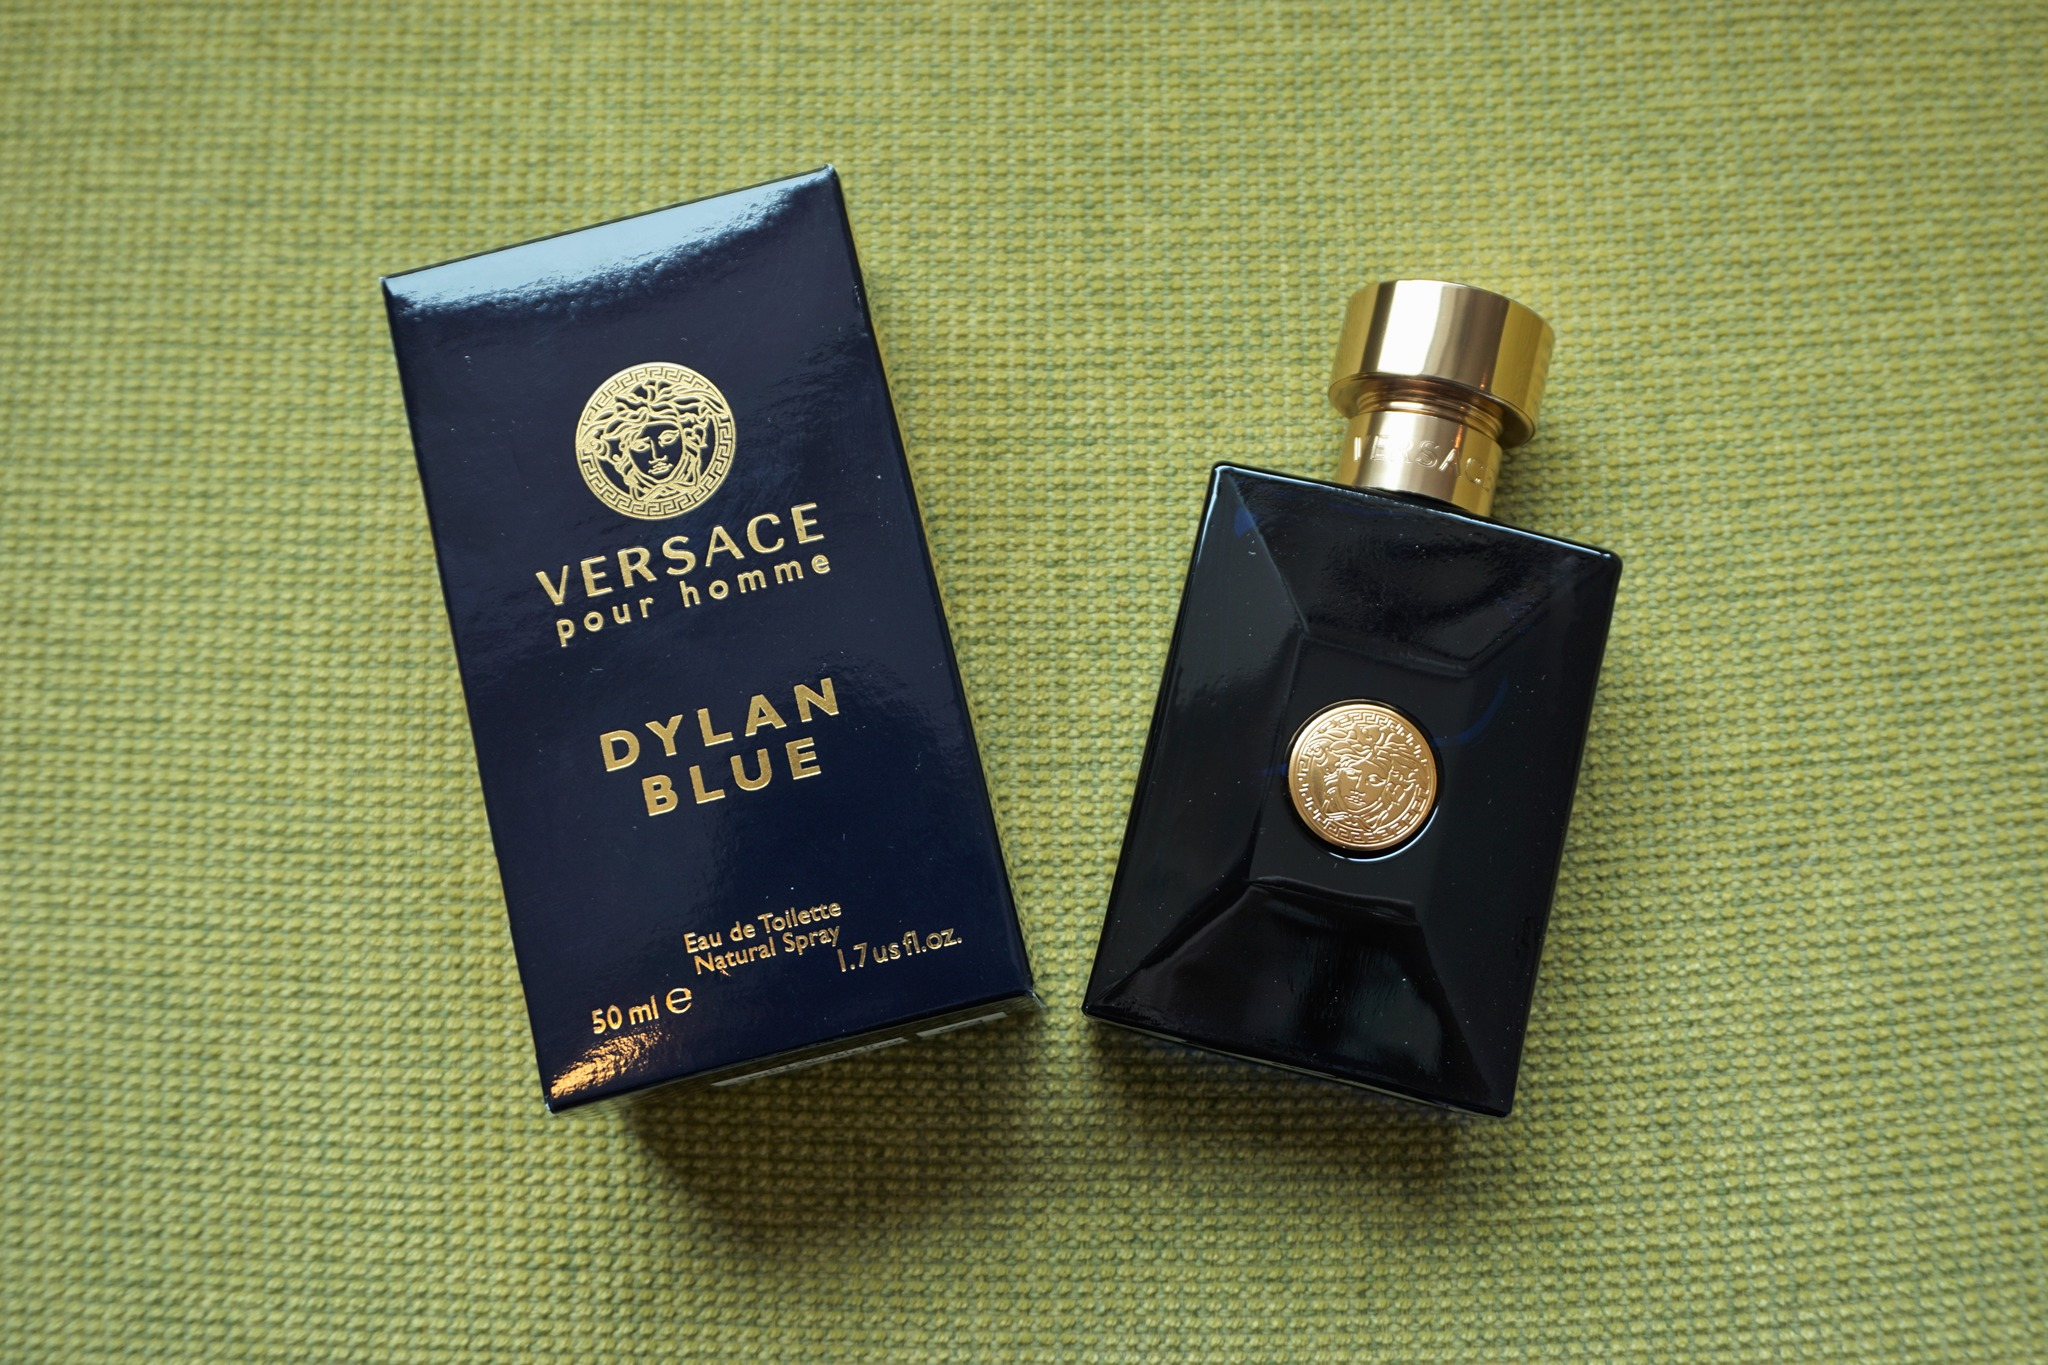 82089aa7fa4 Versace Pour Homme Dylan Blue: The Biker's Fragrance – Pinoy Guy Guide